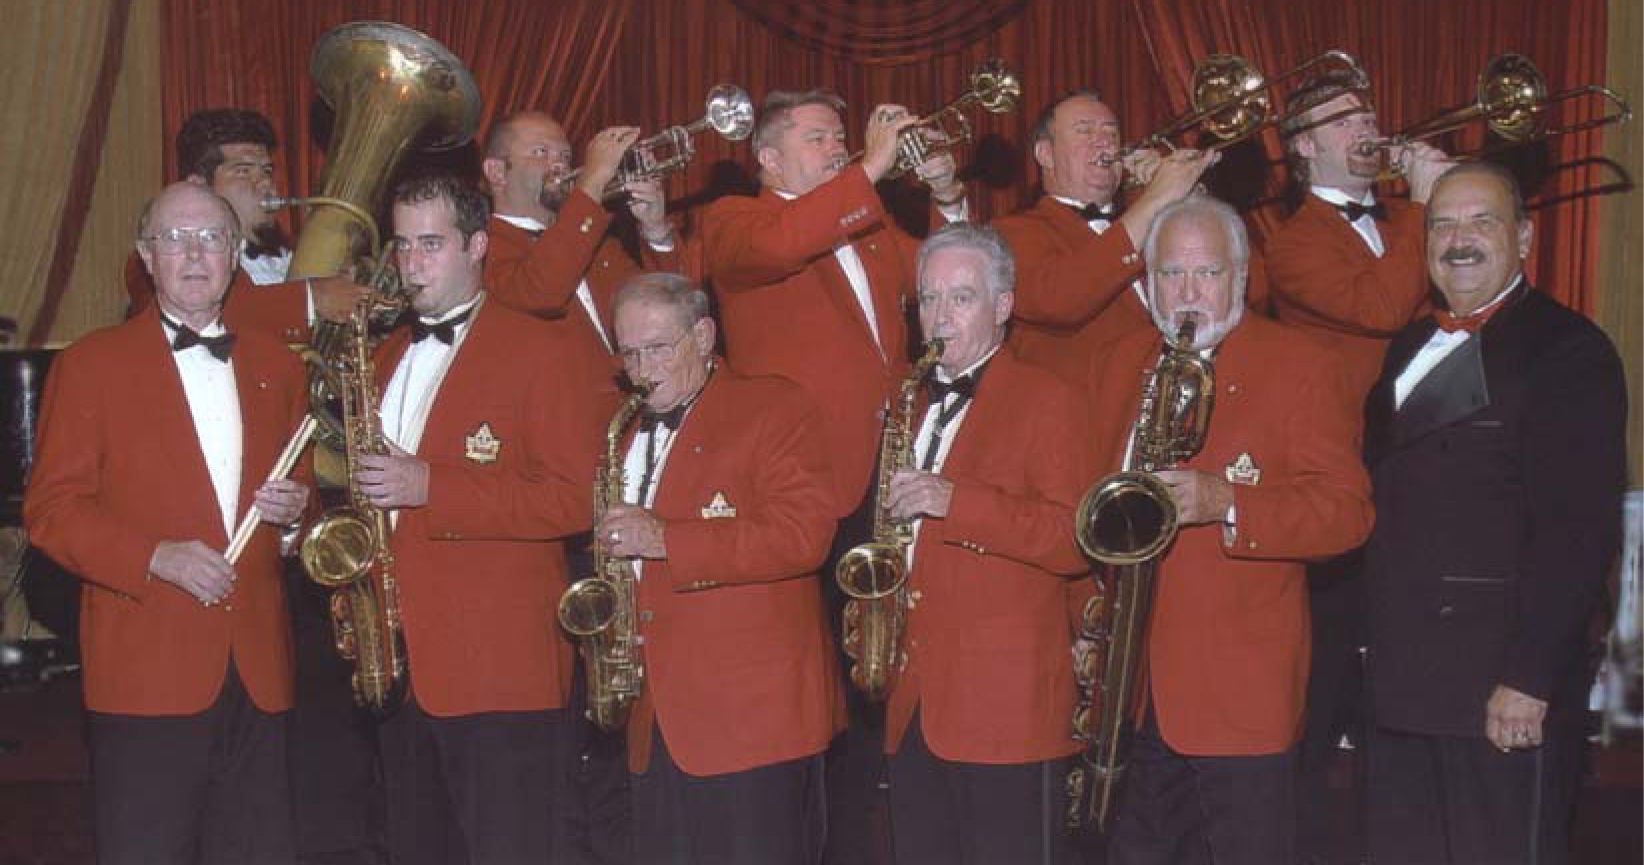 Guy Lombardo's Royal Canadians